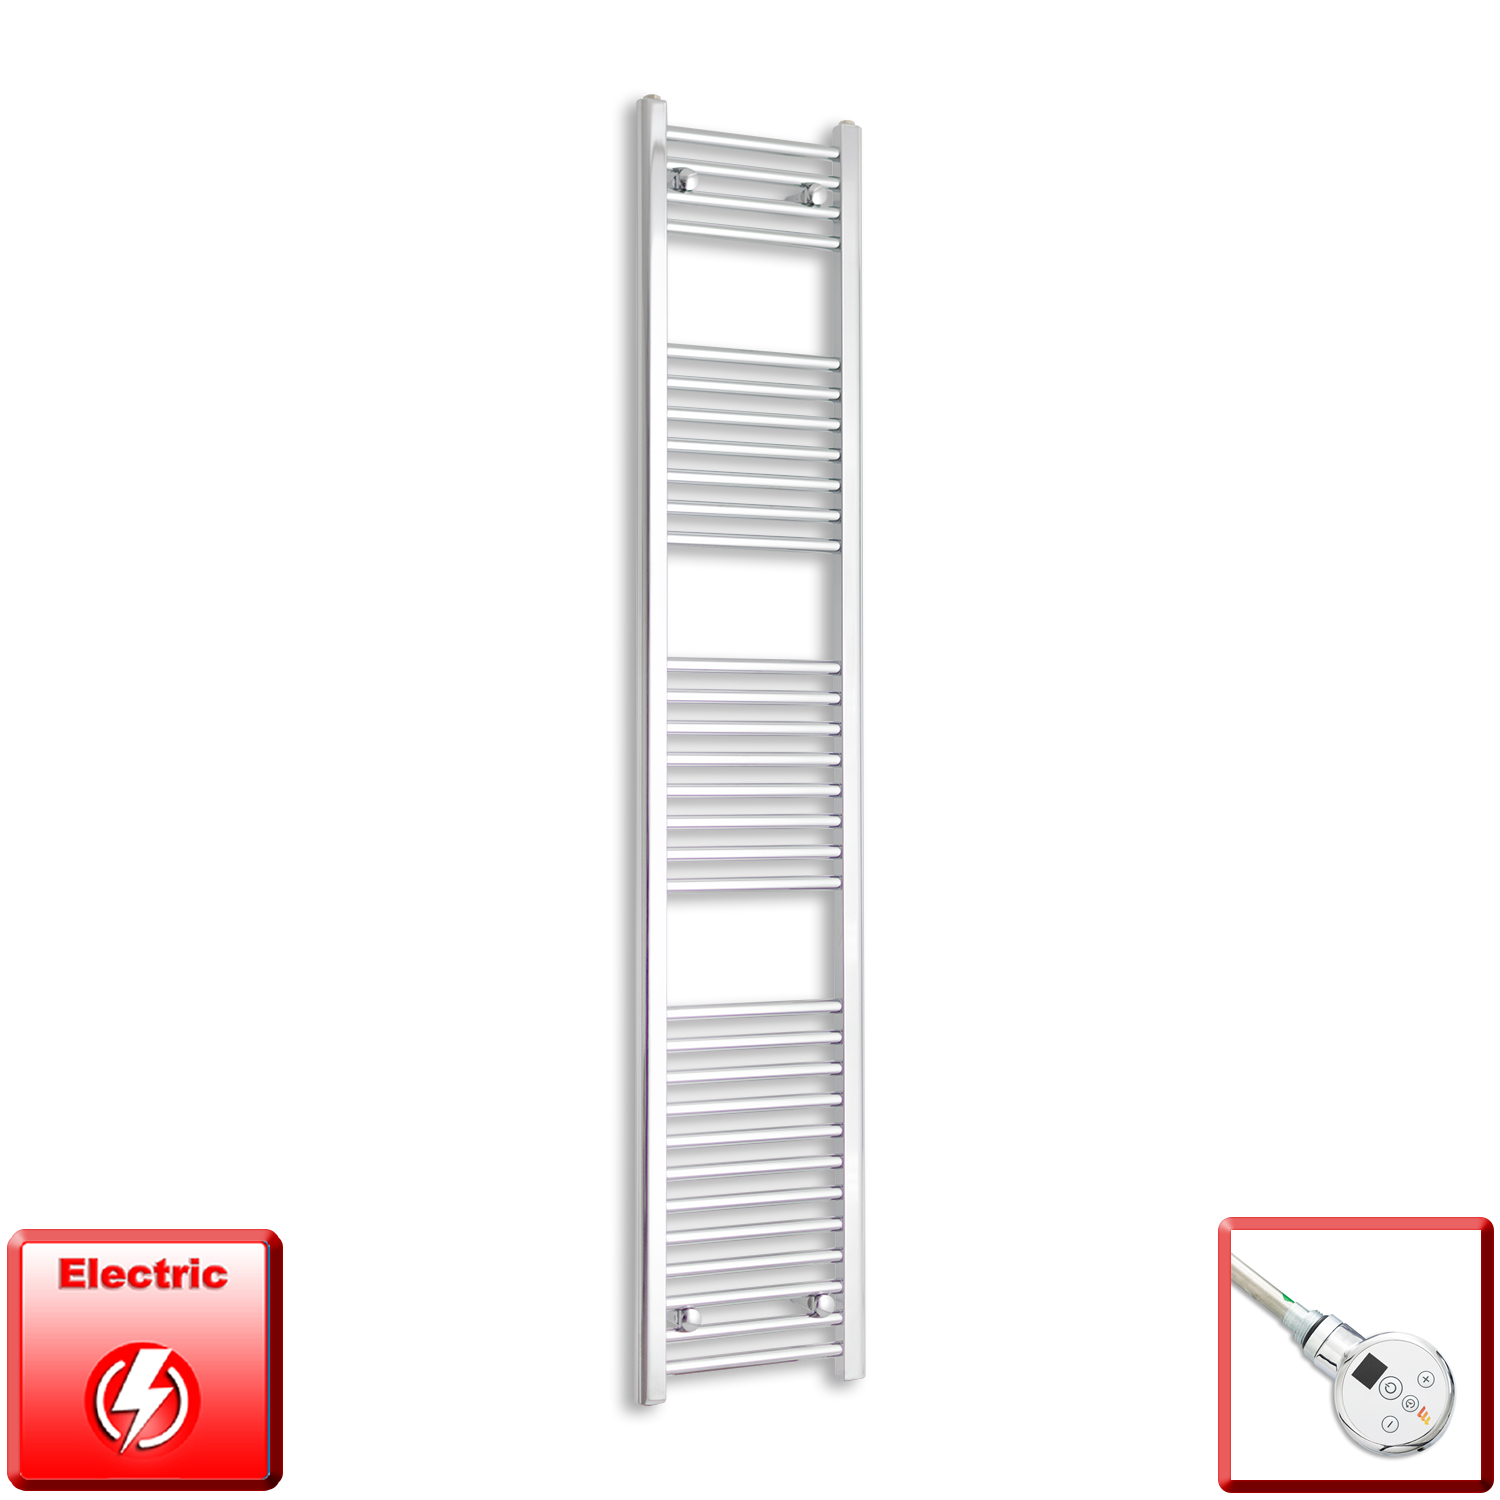 350mm Wide 1800mm High Pre-Filled Black Electric Towel Rail Radiator With Thermostatic DIGI Element